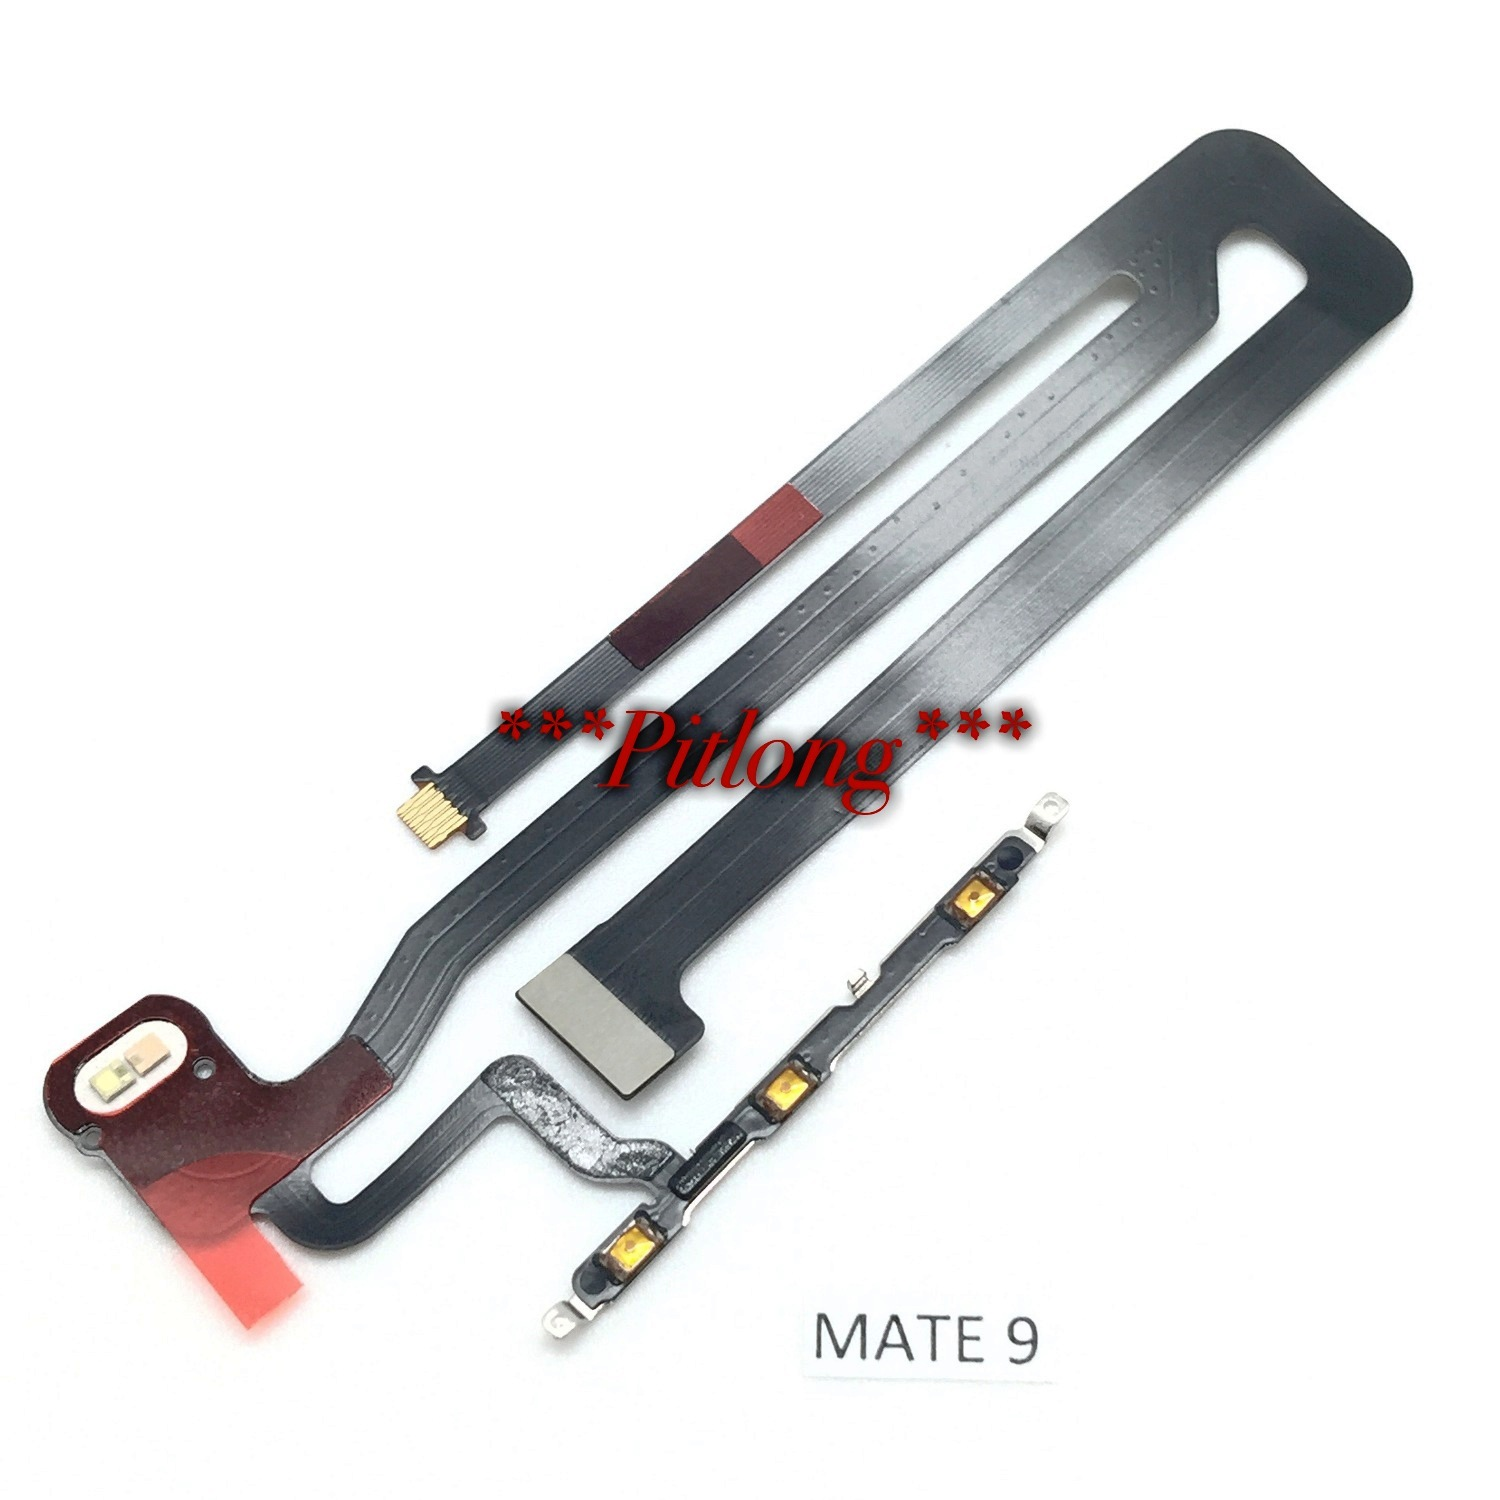 HUAWEI MATE 9 POWER BUTTON ON OFF VOLUMN SWITCH FLEX CABLE^^ FREE TOOLS